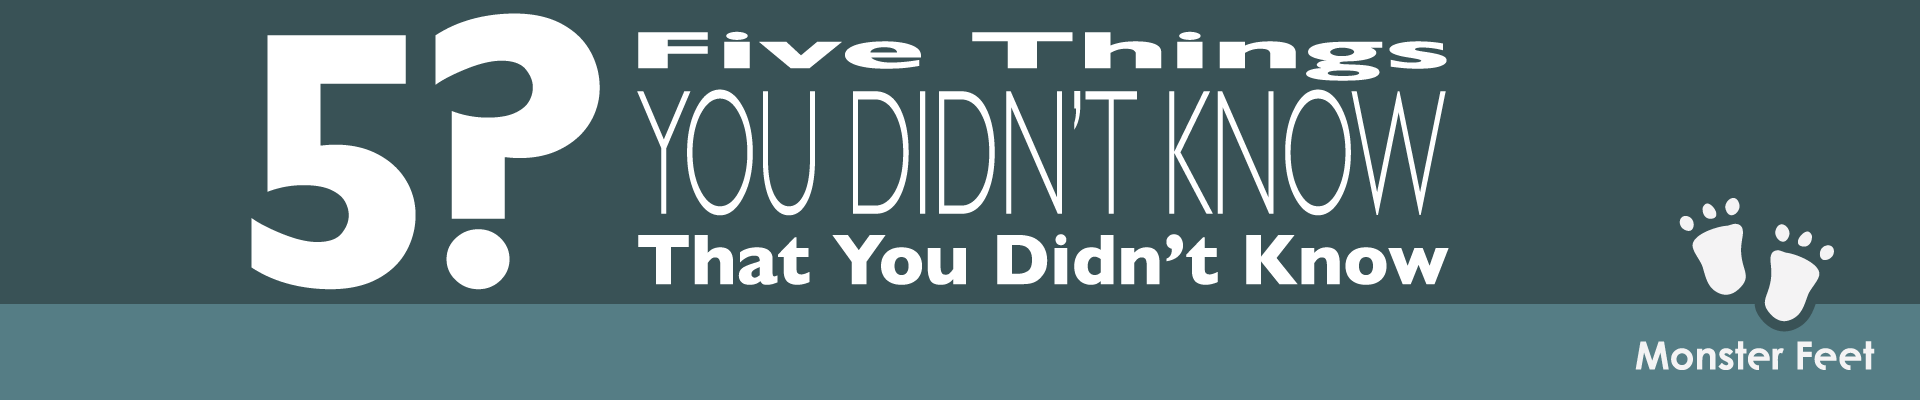 5 Things You Didn't Know You Didn't Know